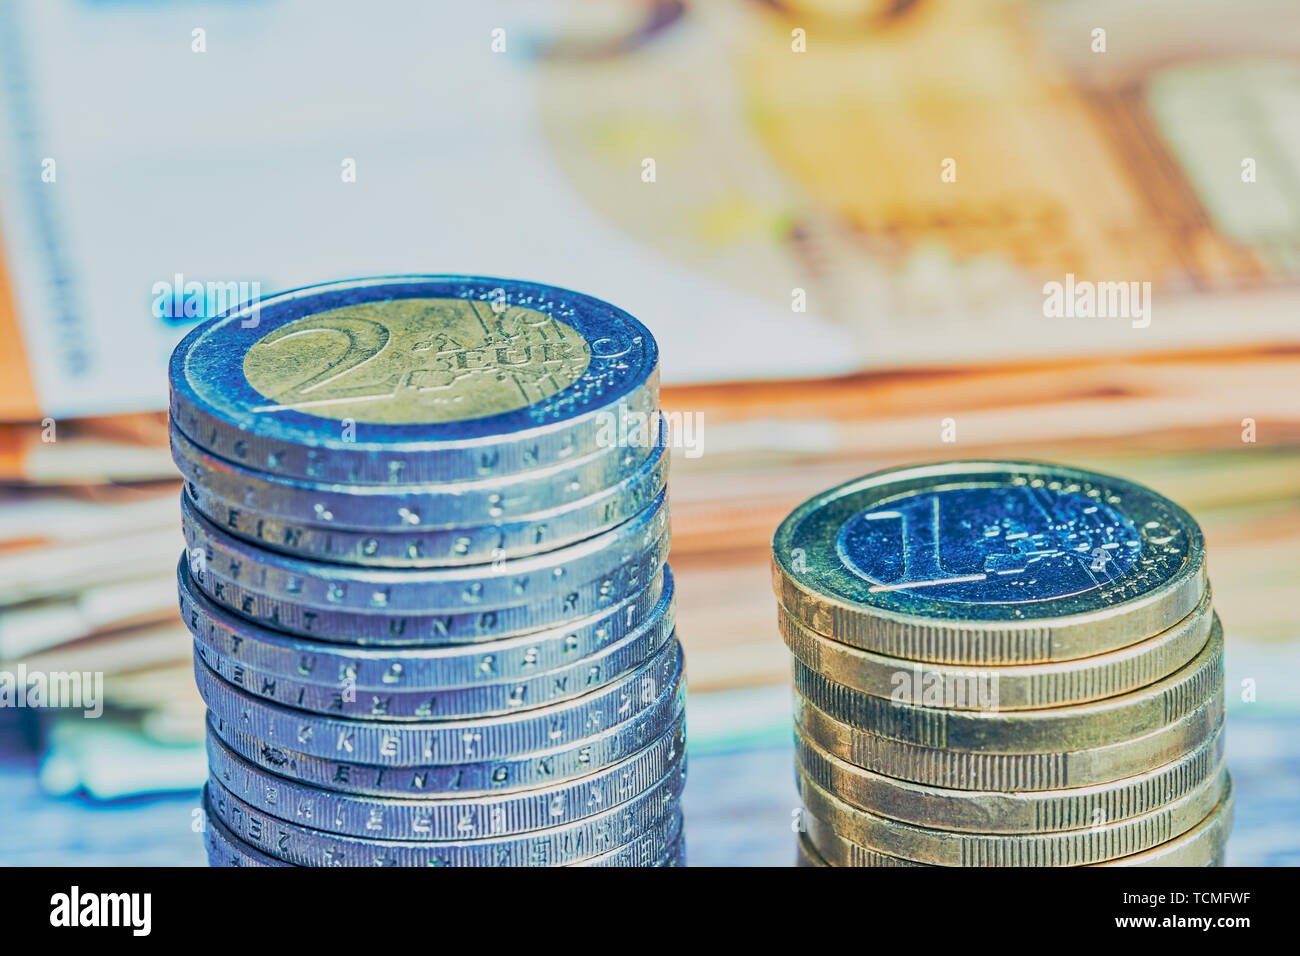 stack with one Euro coins beside a stack of two Euro coins, in the background lying blurred Euro banknotes, cold color style - Stock Image